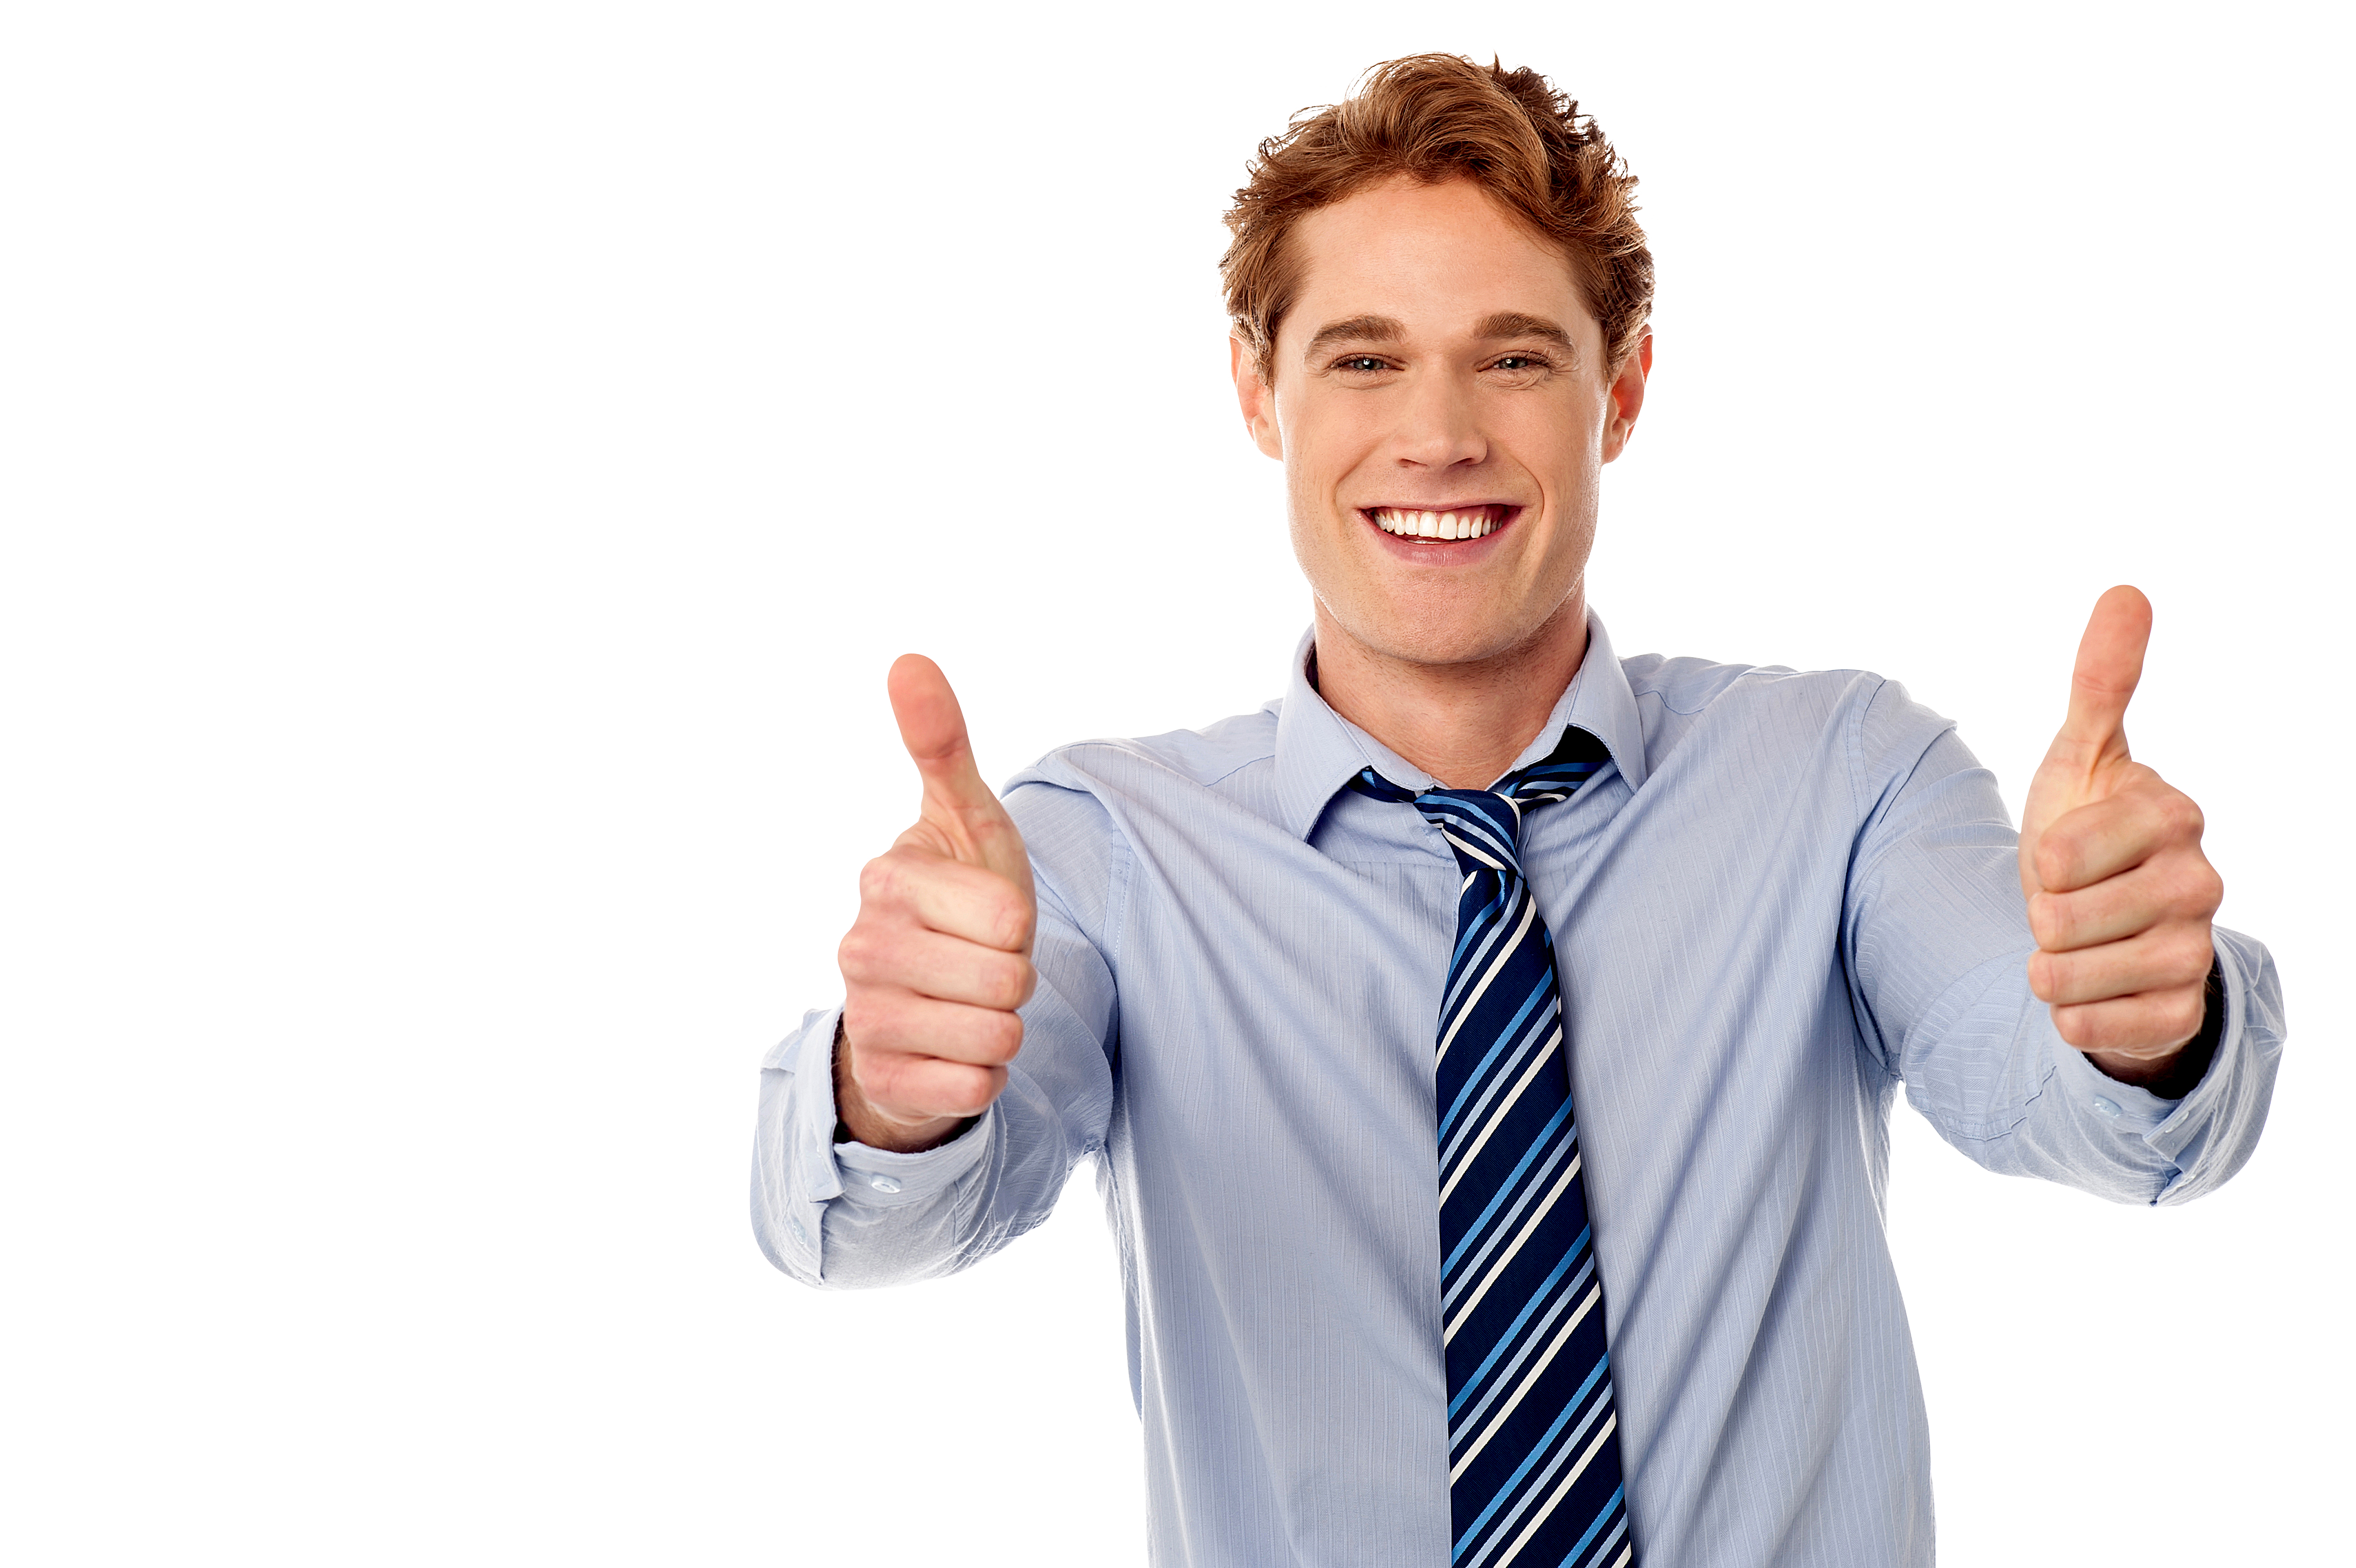 Men Pointing Thumbs Up